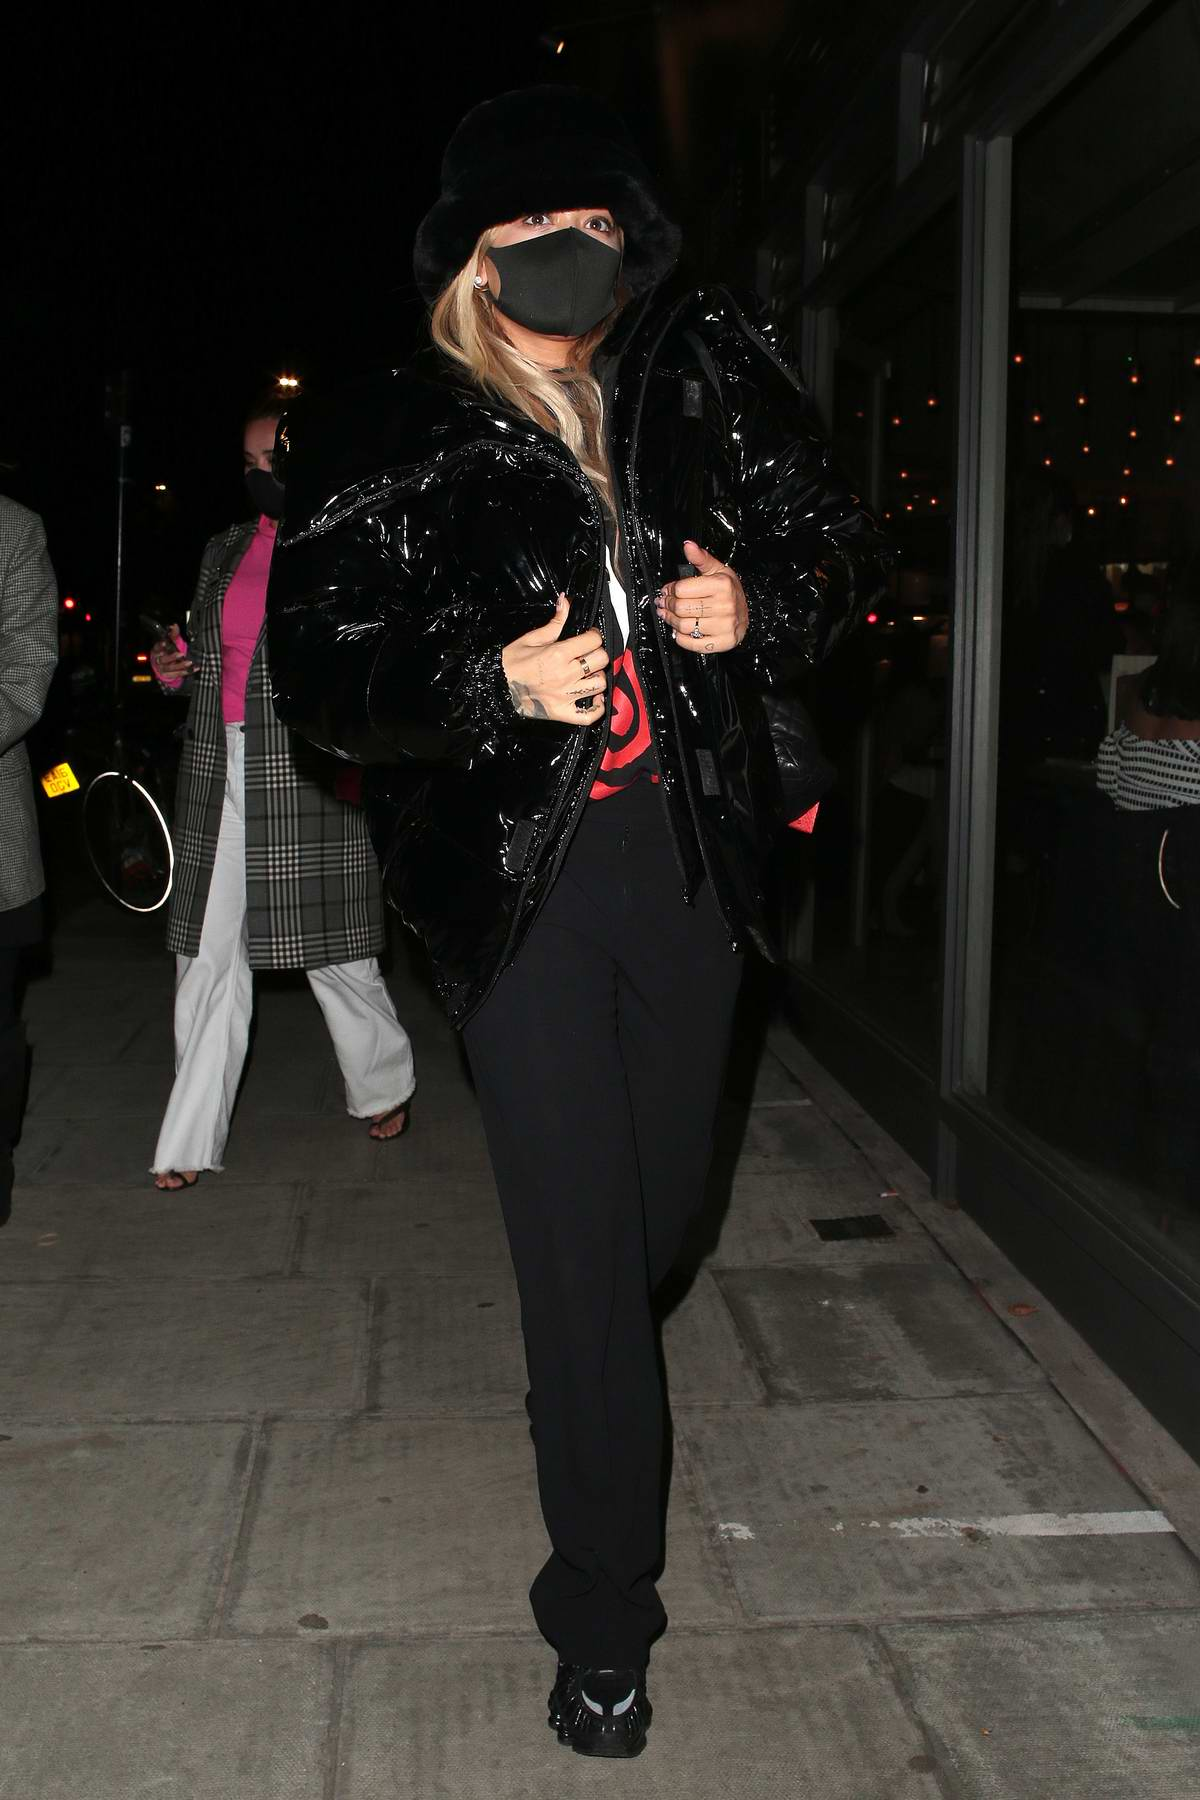 Rita Ora dons all black while out for dinner with friends at Taqueria Mexican restaurant in Notting Hill, London, UK